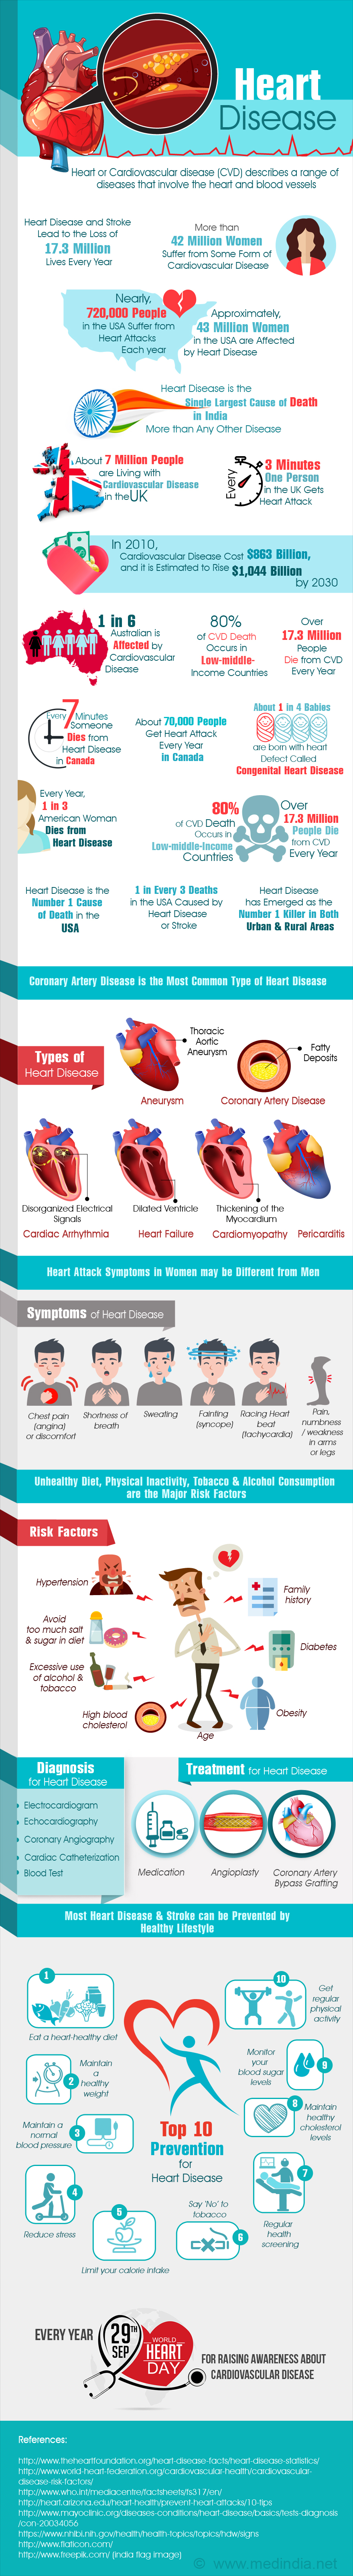 Heart Disease - Infographic